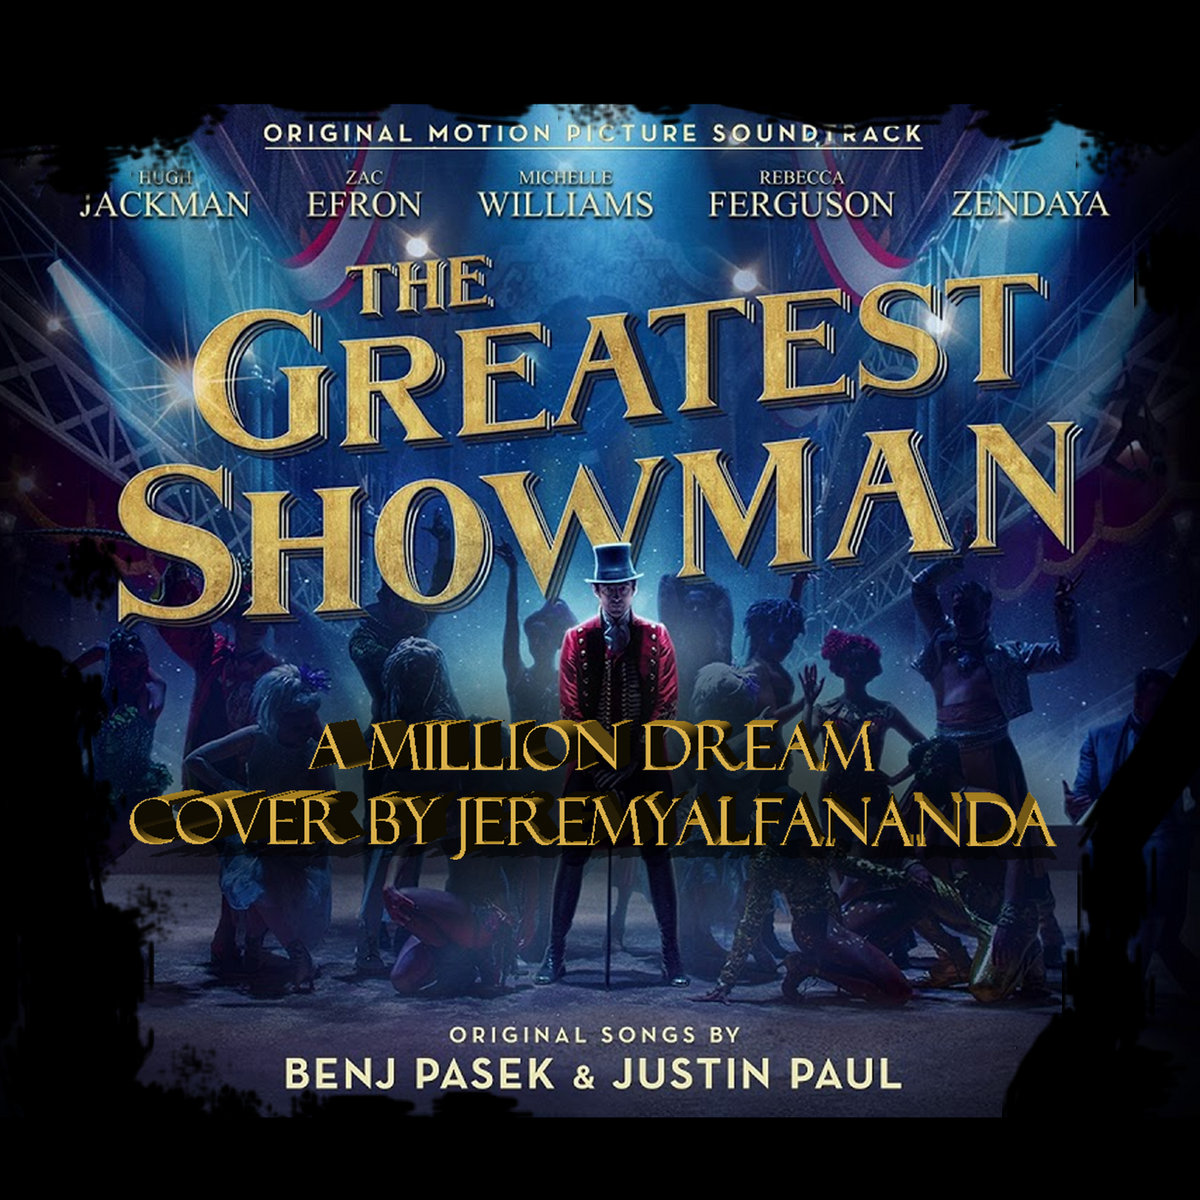 A MILLION DREAM The Greatest Showman Cover By Jeremy